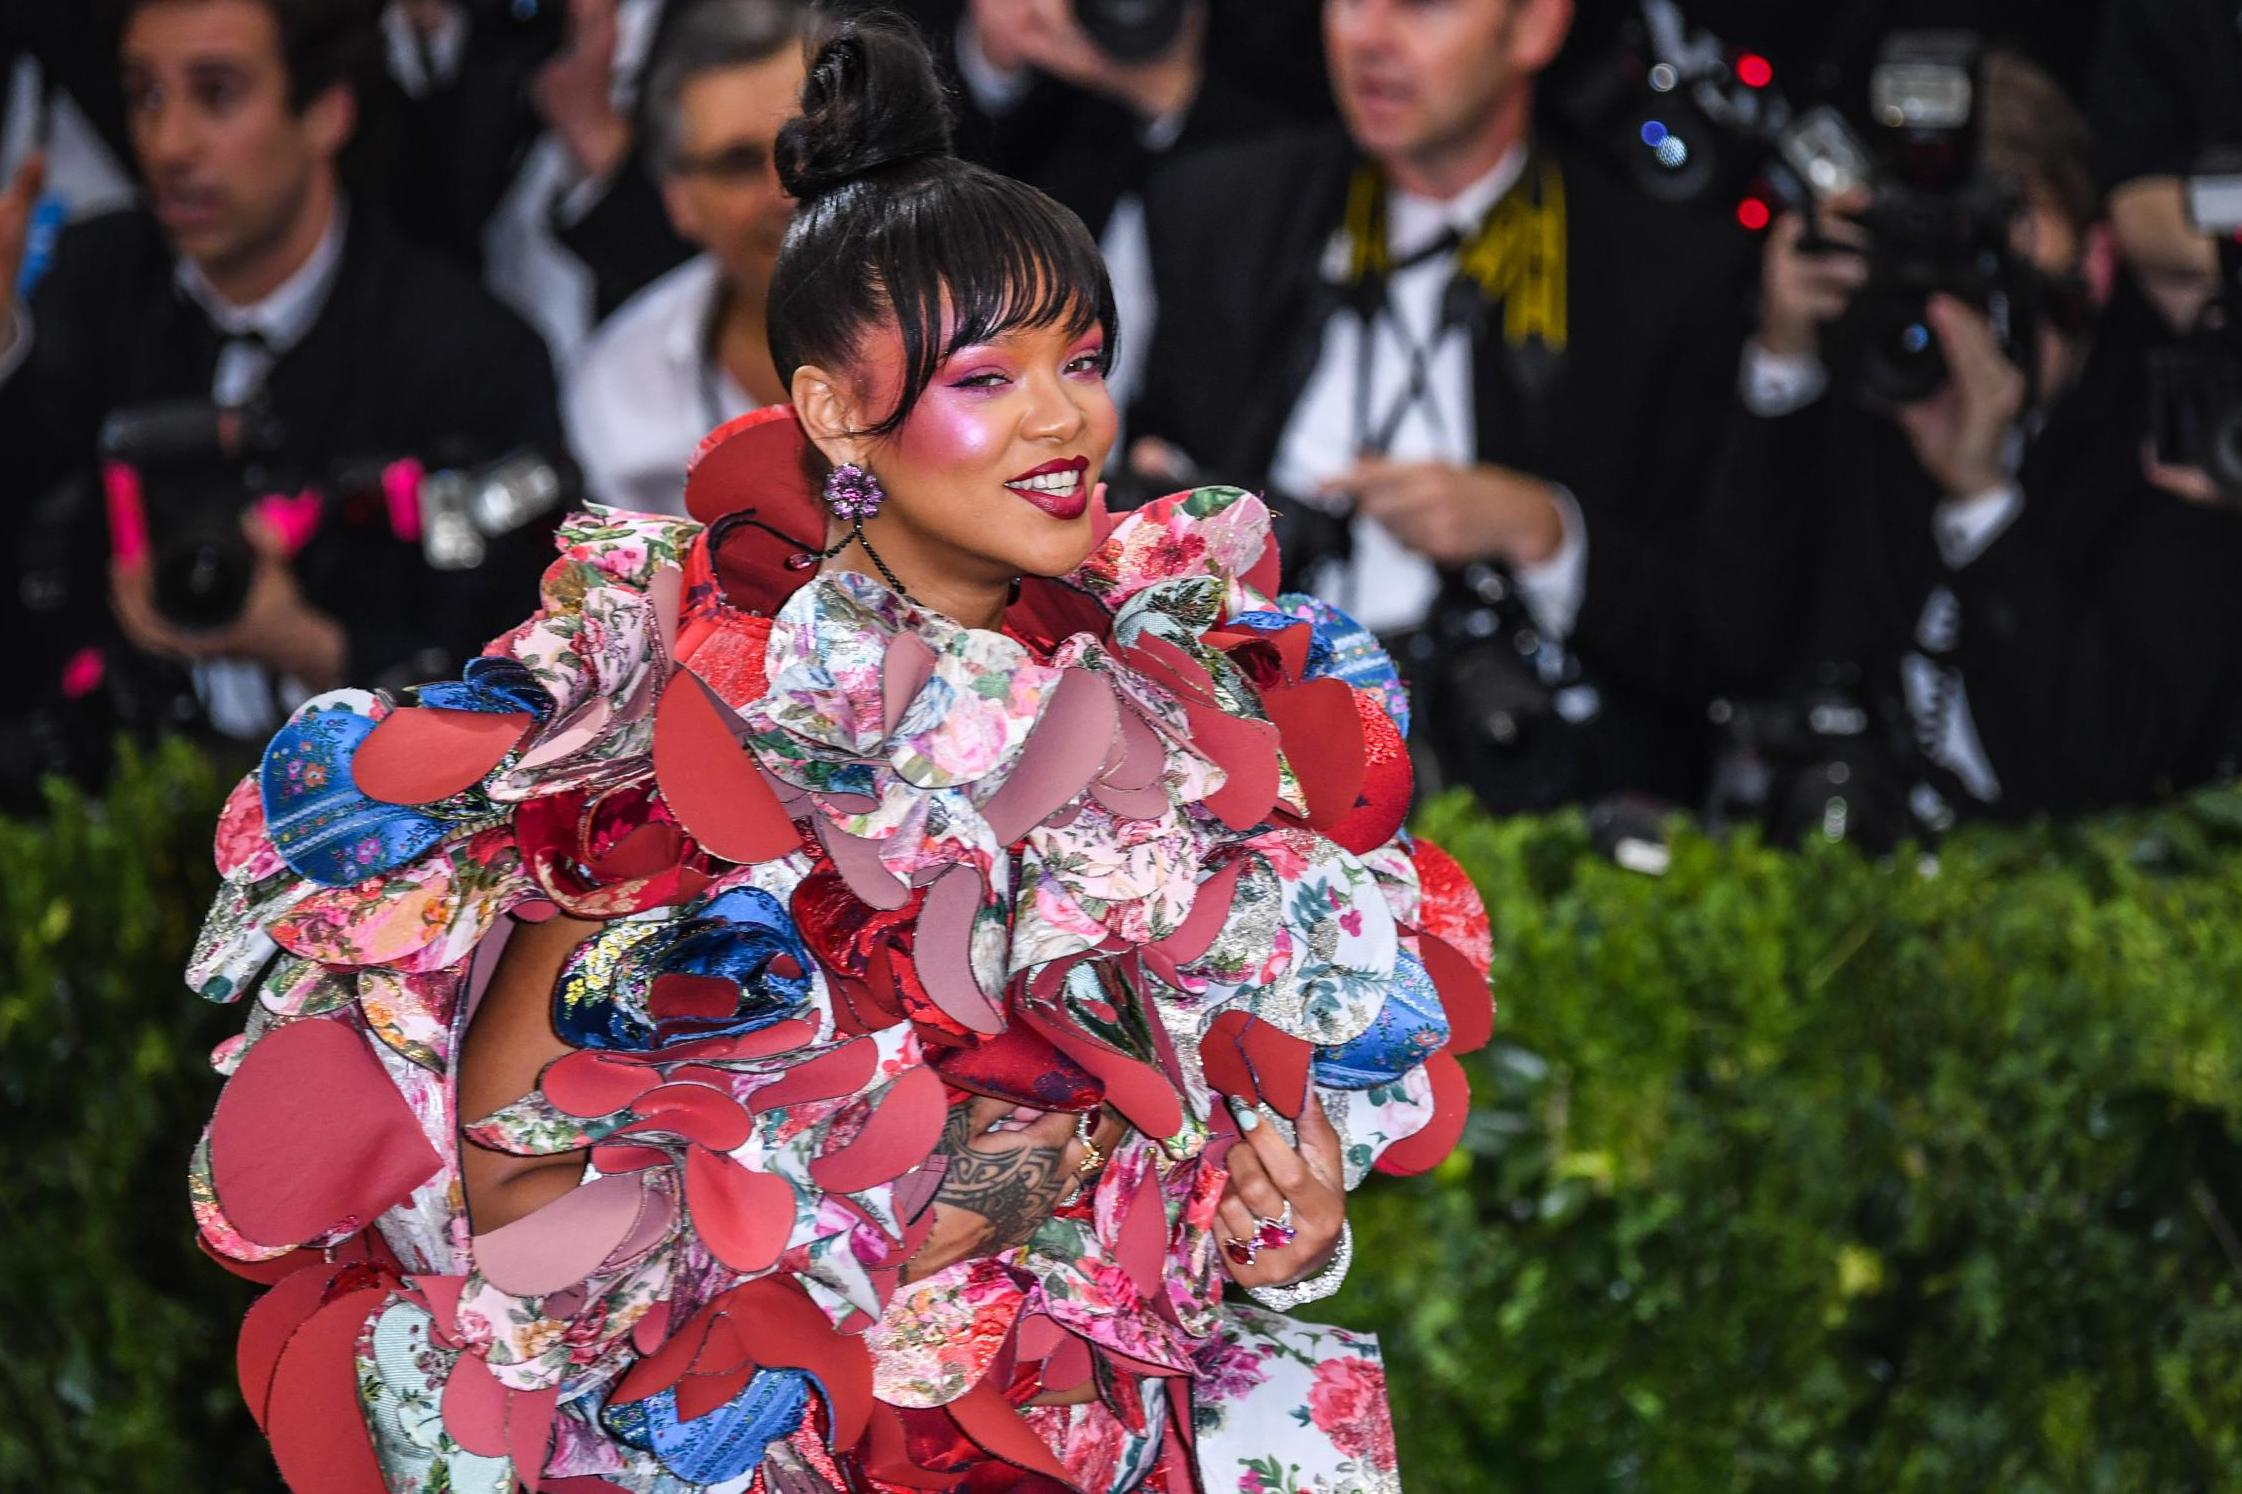 Met Gala: Best dresses of all time, from Rihanna to Lady Gaga